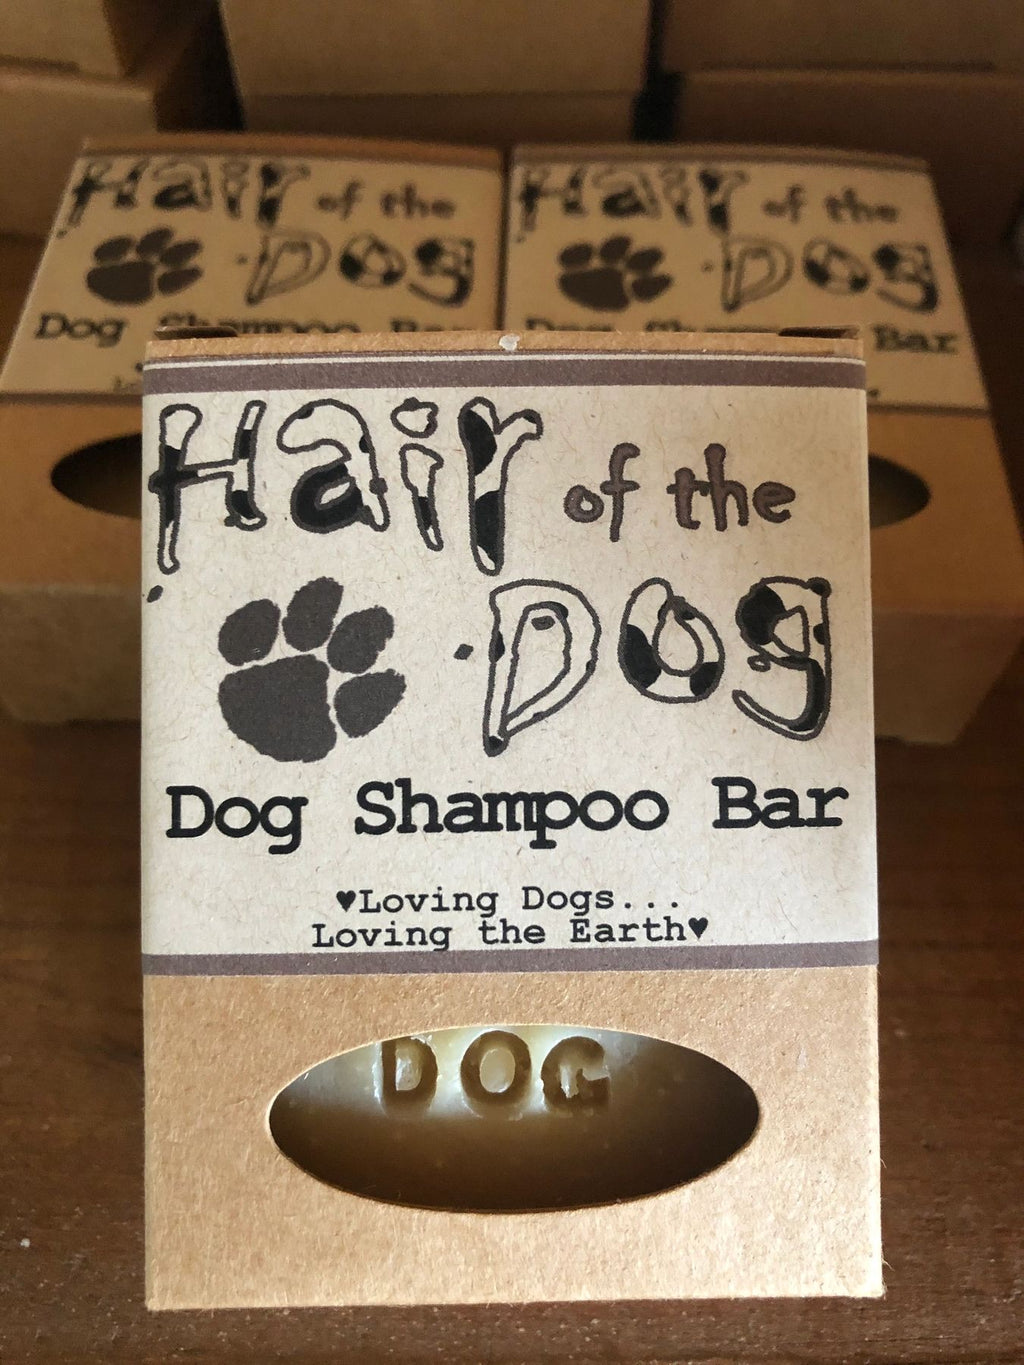 Hair of the Dog Shampoo